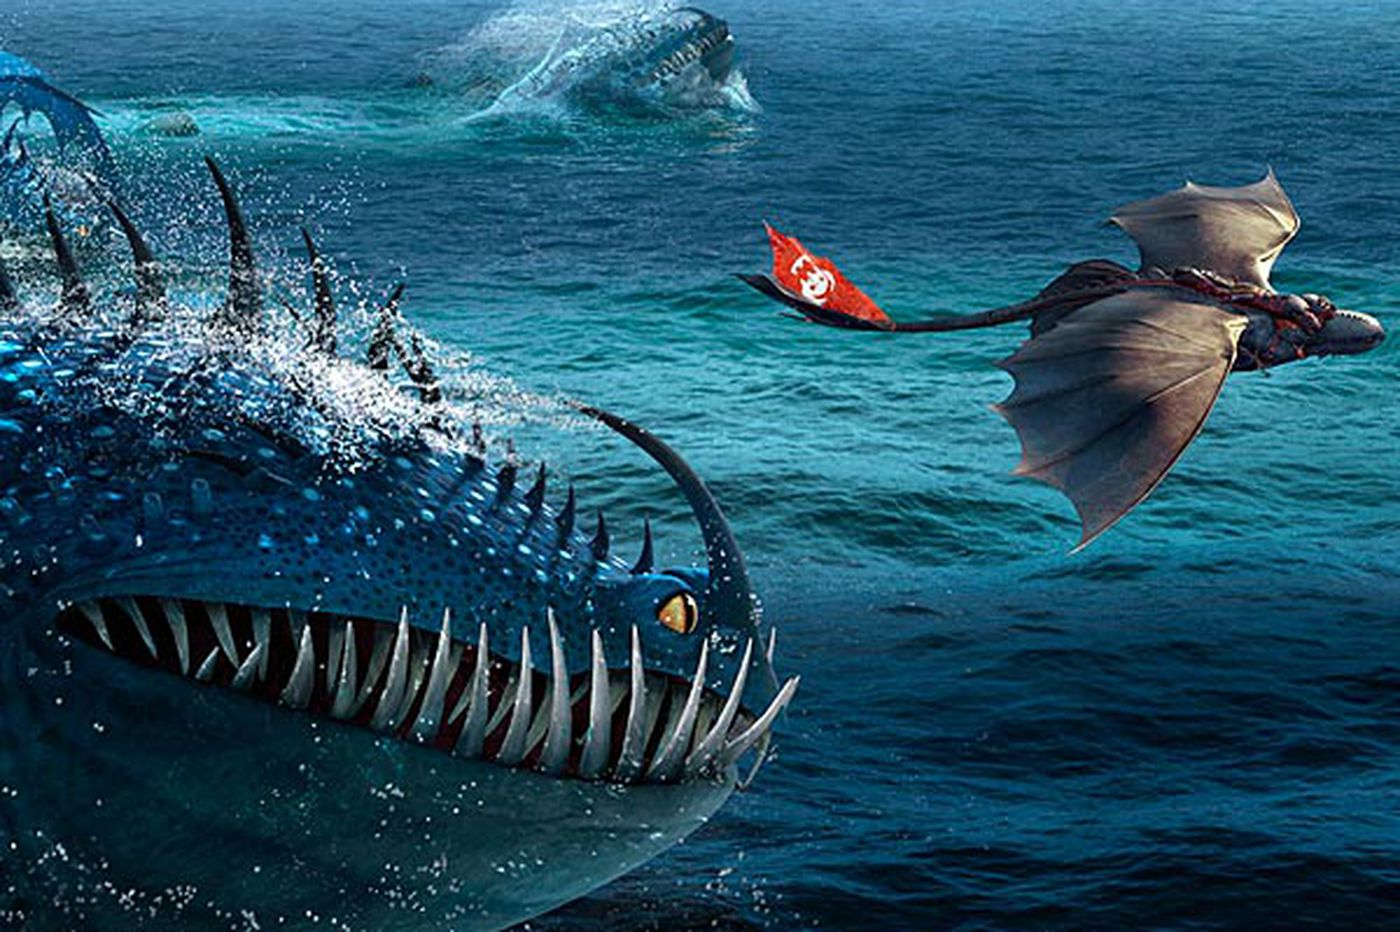 'How to Train Your Dragon 2': Sequel breathes excellent fire